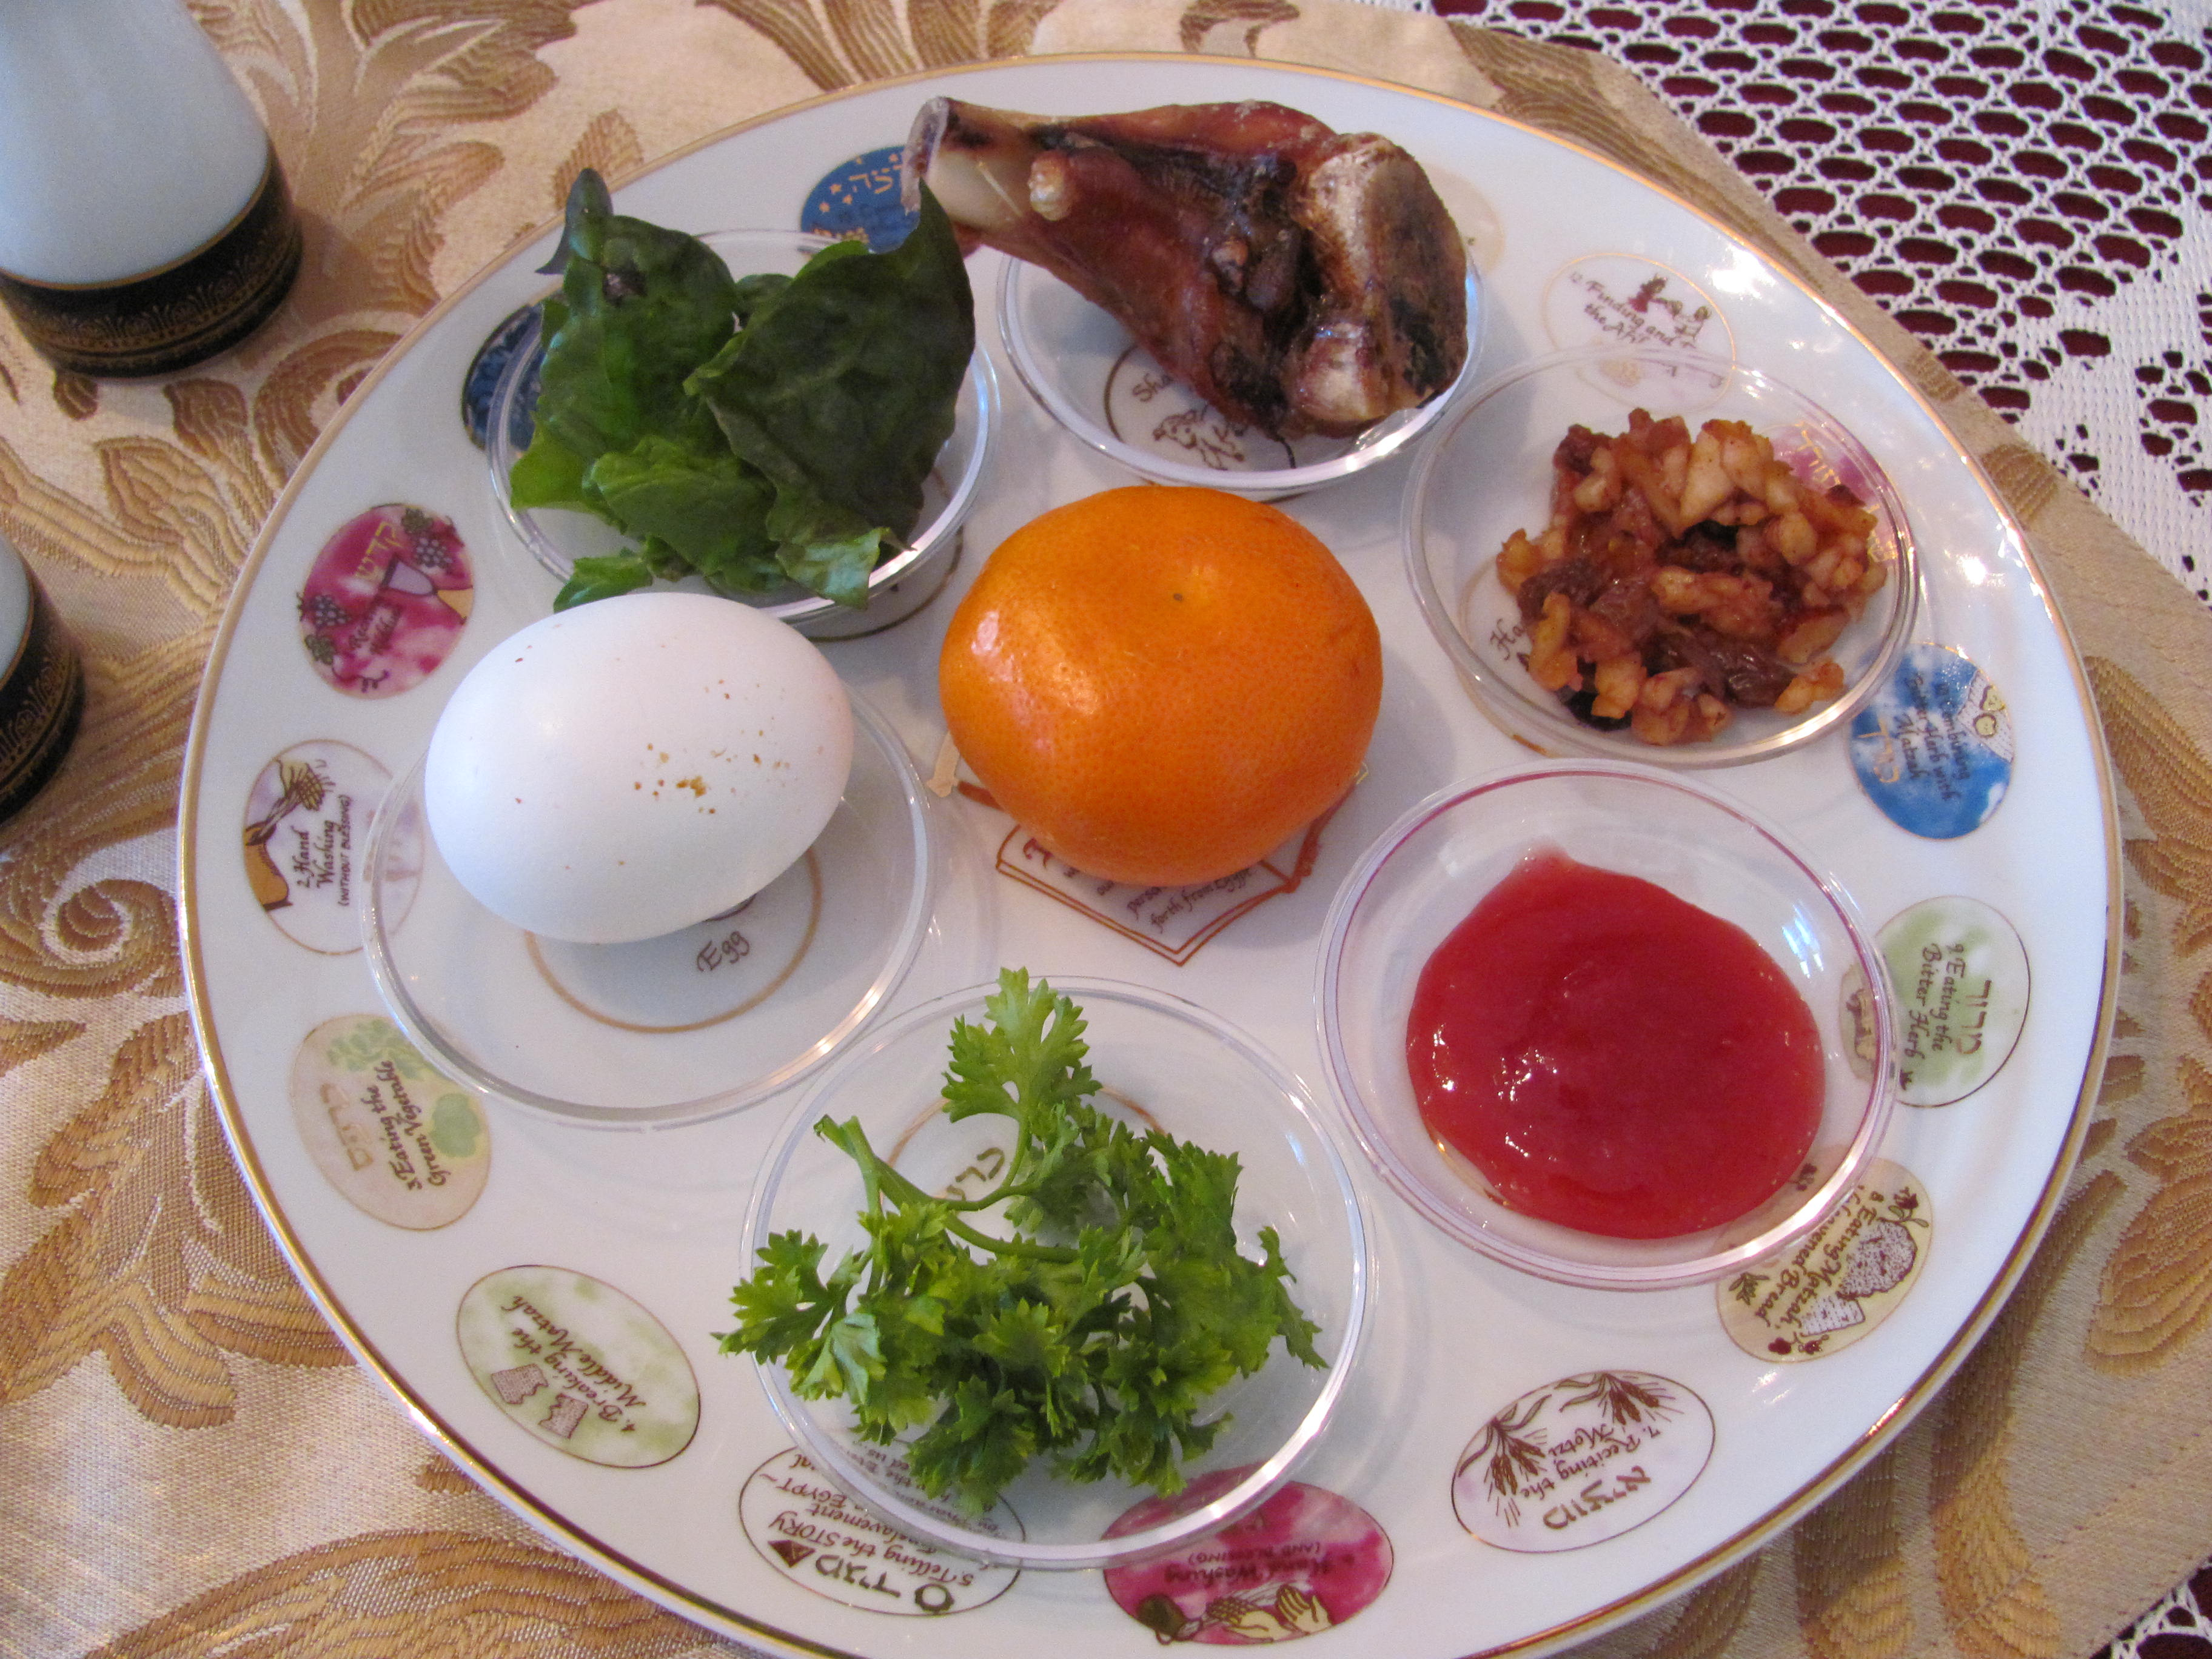 Passover Seder Prayers And The Meaning Of The Seder Foods